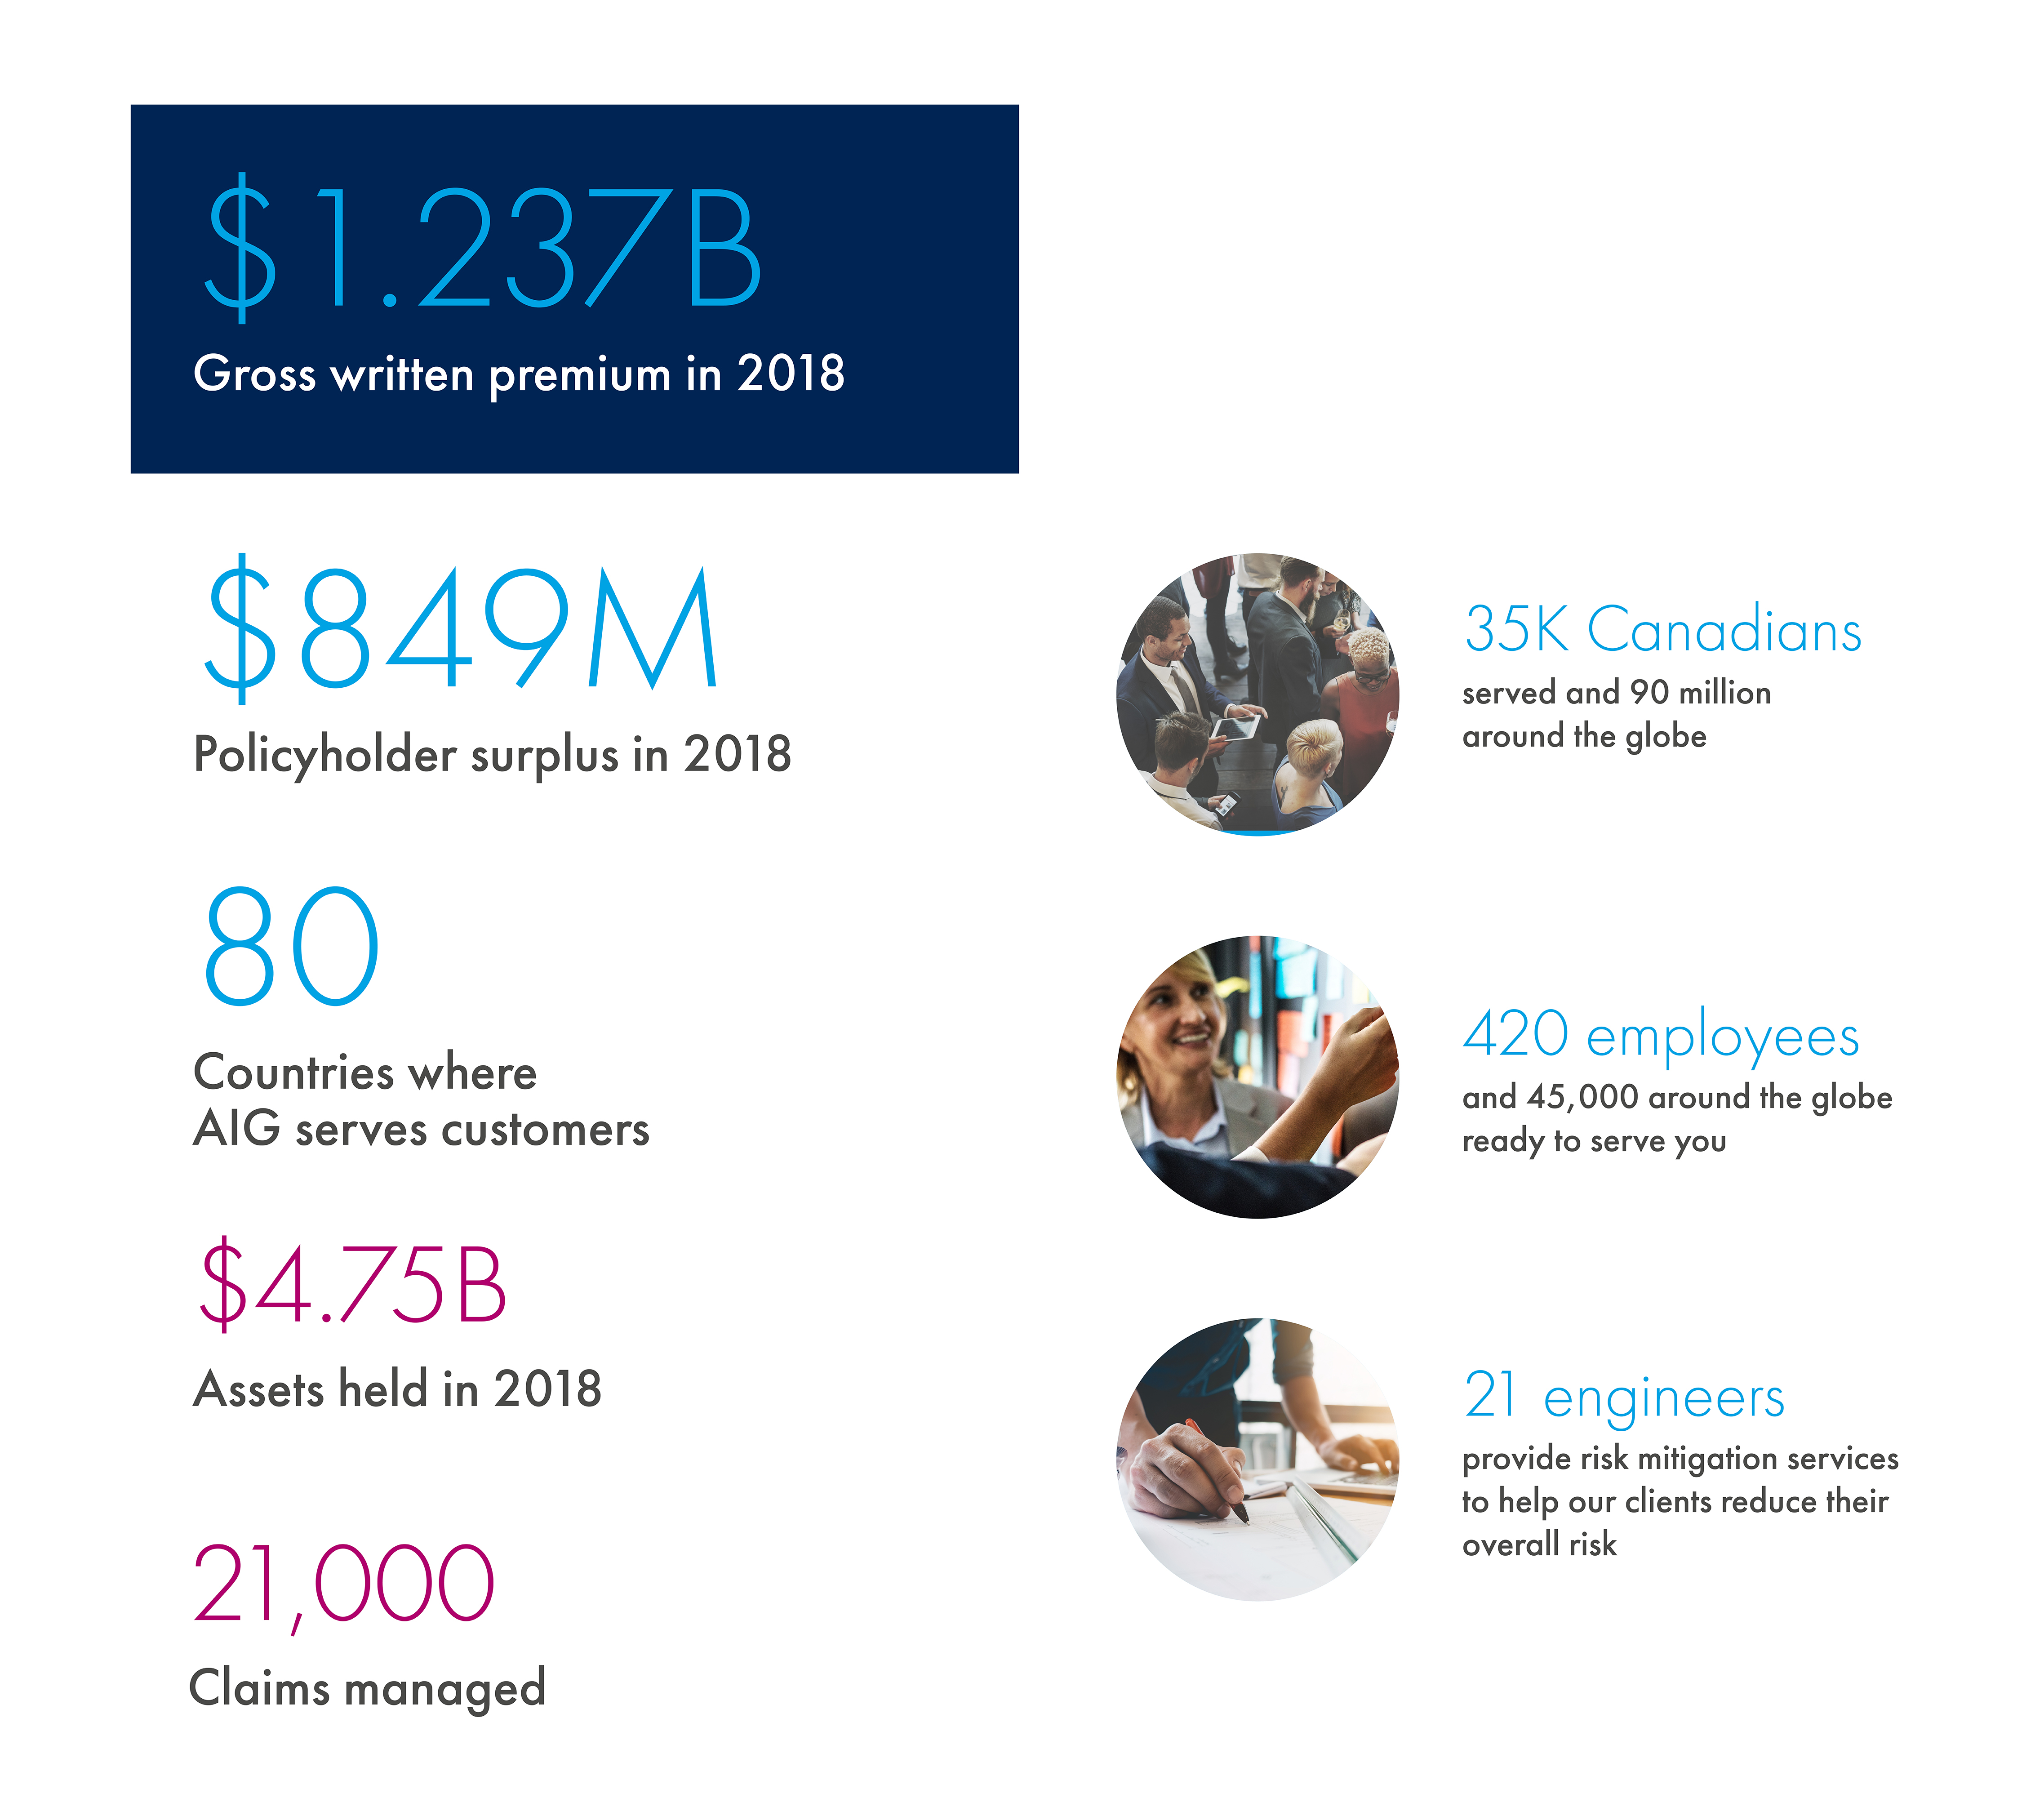 $1.125 Billion AIG Canada's GWP in 2016, $814 Million policyholder surplus at AIG in Canada, $670 Million claims paid in 2016, 80 countries where AIG services customers, $4.08 Billion in assets, 25,000 claims managed by AIG in Canada, 425 employees in Canada, AIG serves 37,000 Canadians and $90 Million around the globe, 15 engineers in Canada provide loss prevention services